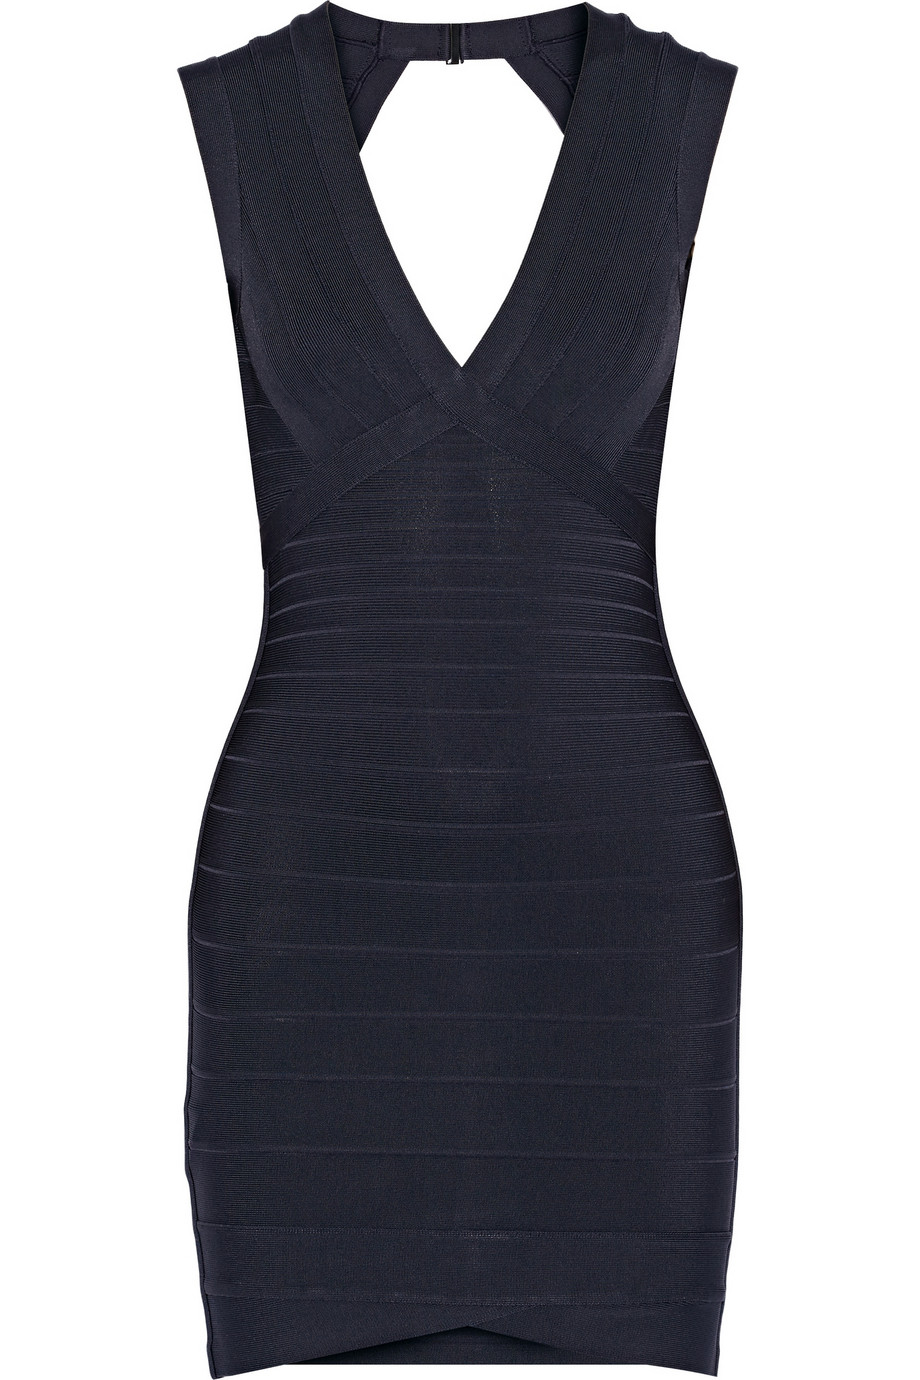 Little Blue Dress Herve Leger Bandage Mini